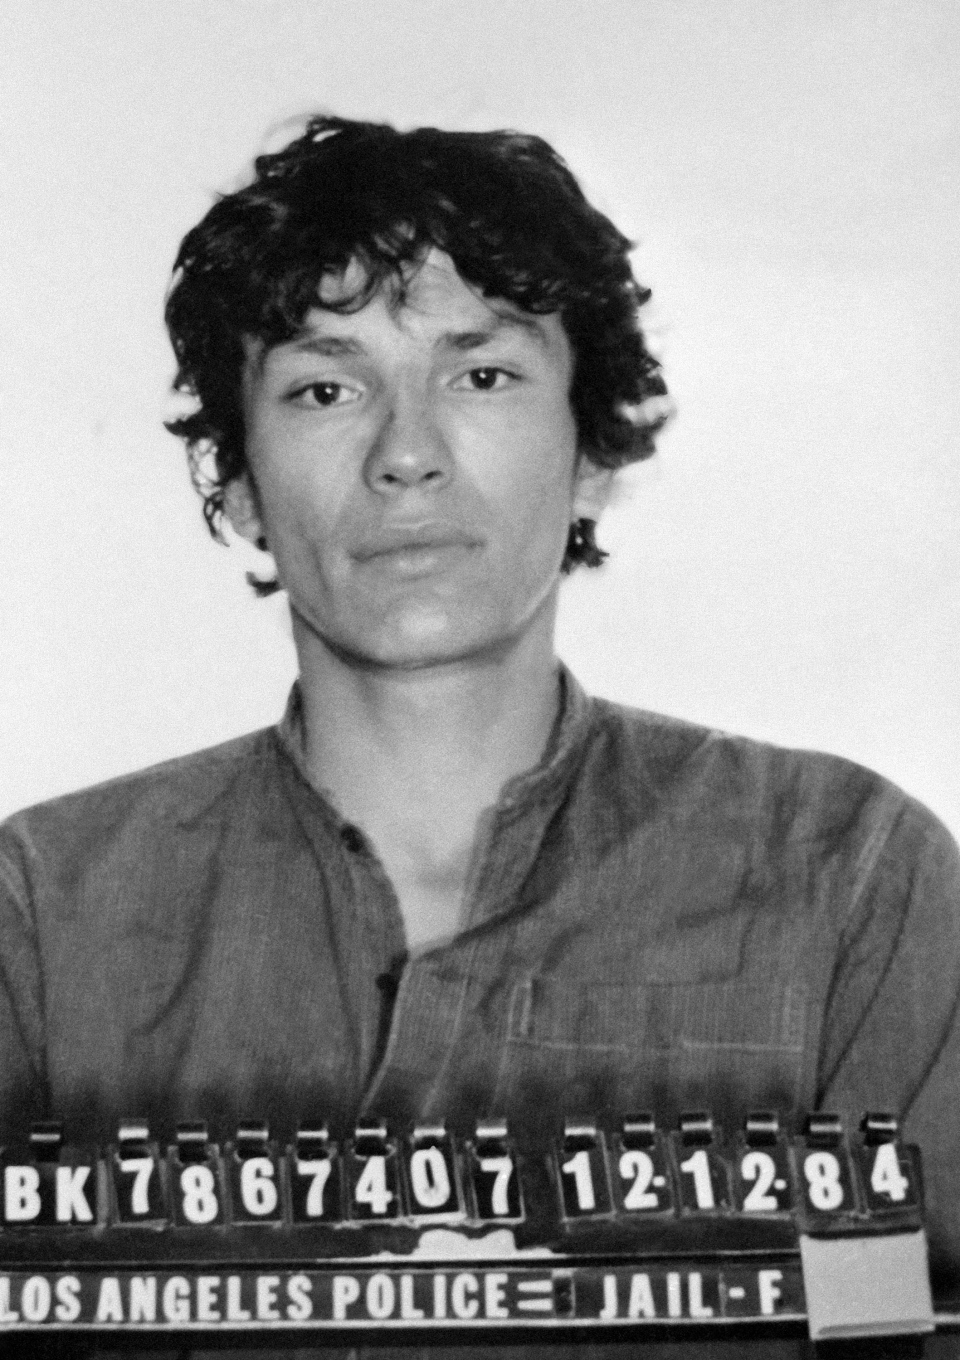 This undated file photo released by the Los Angeles Police Department shows the booking photo of serial killer Richard Ramirez in Los Angeles, Calif.